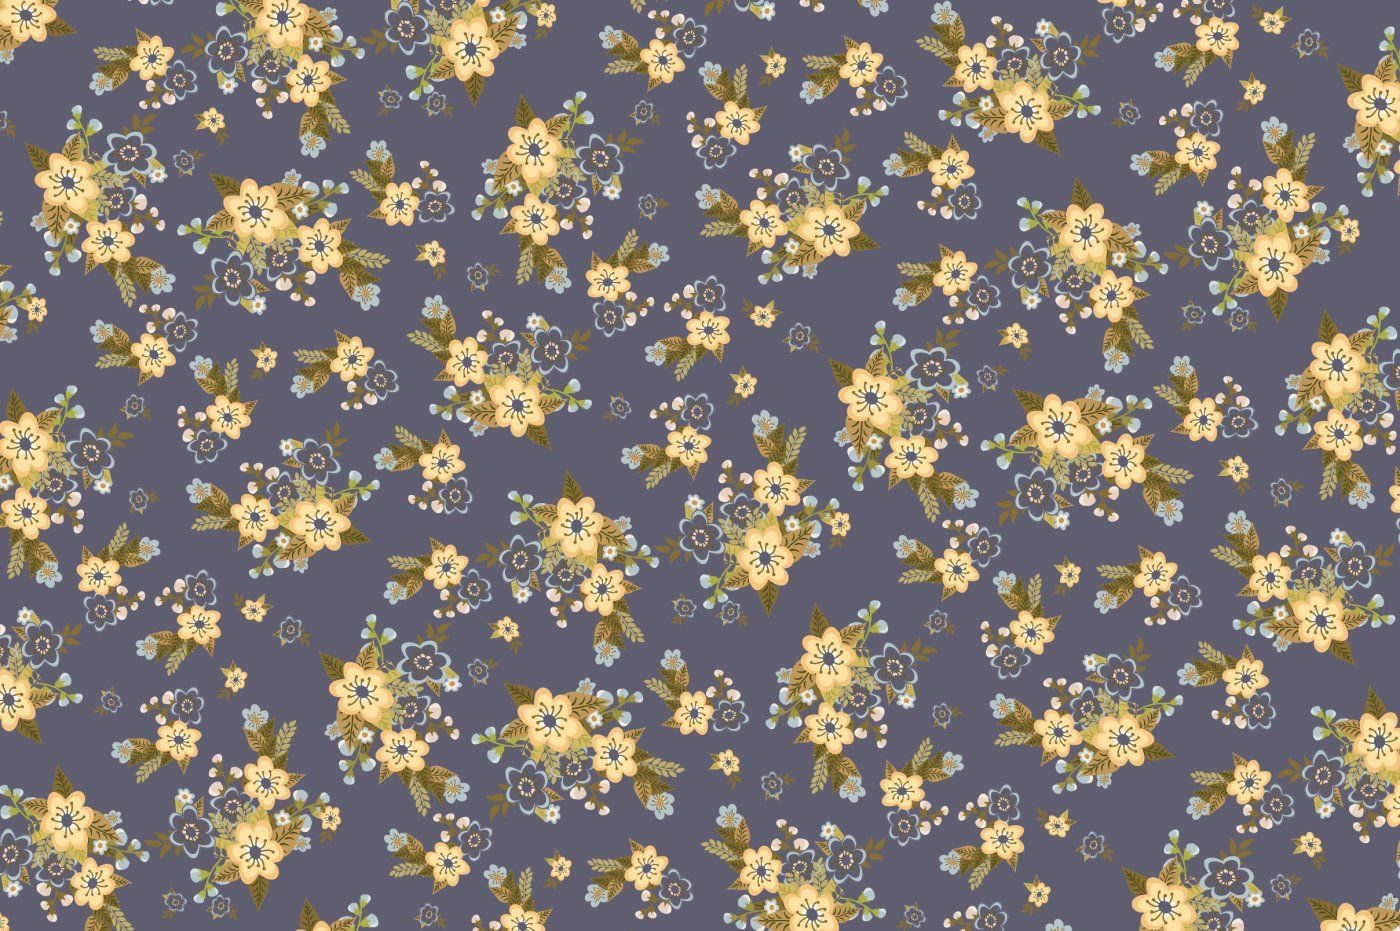 Vintage Floral Pattern Papers Backgrounds By The Pen And Brush